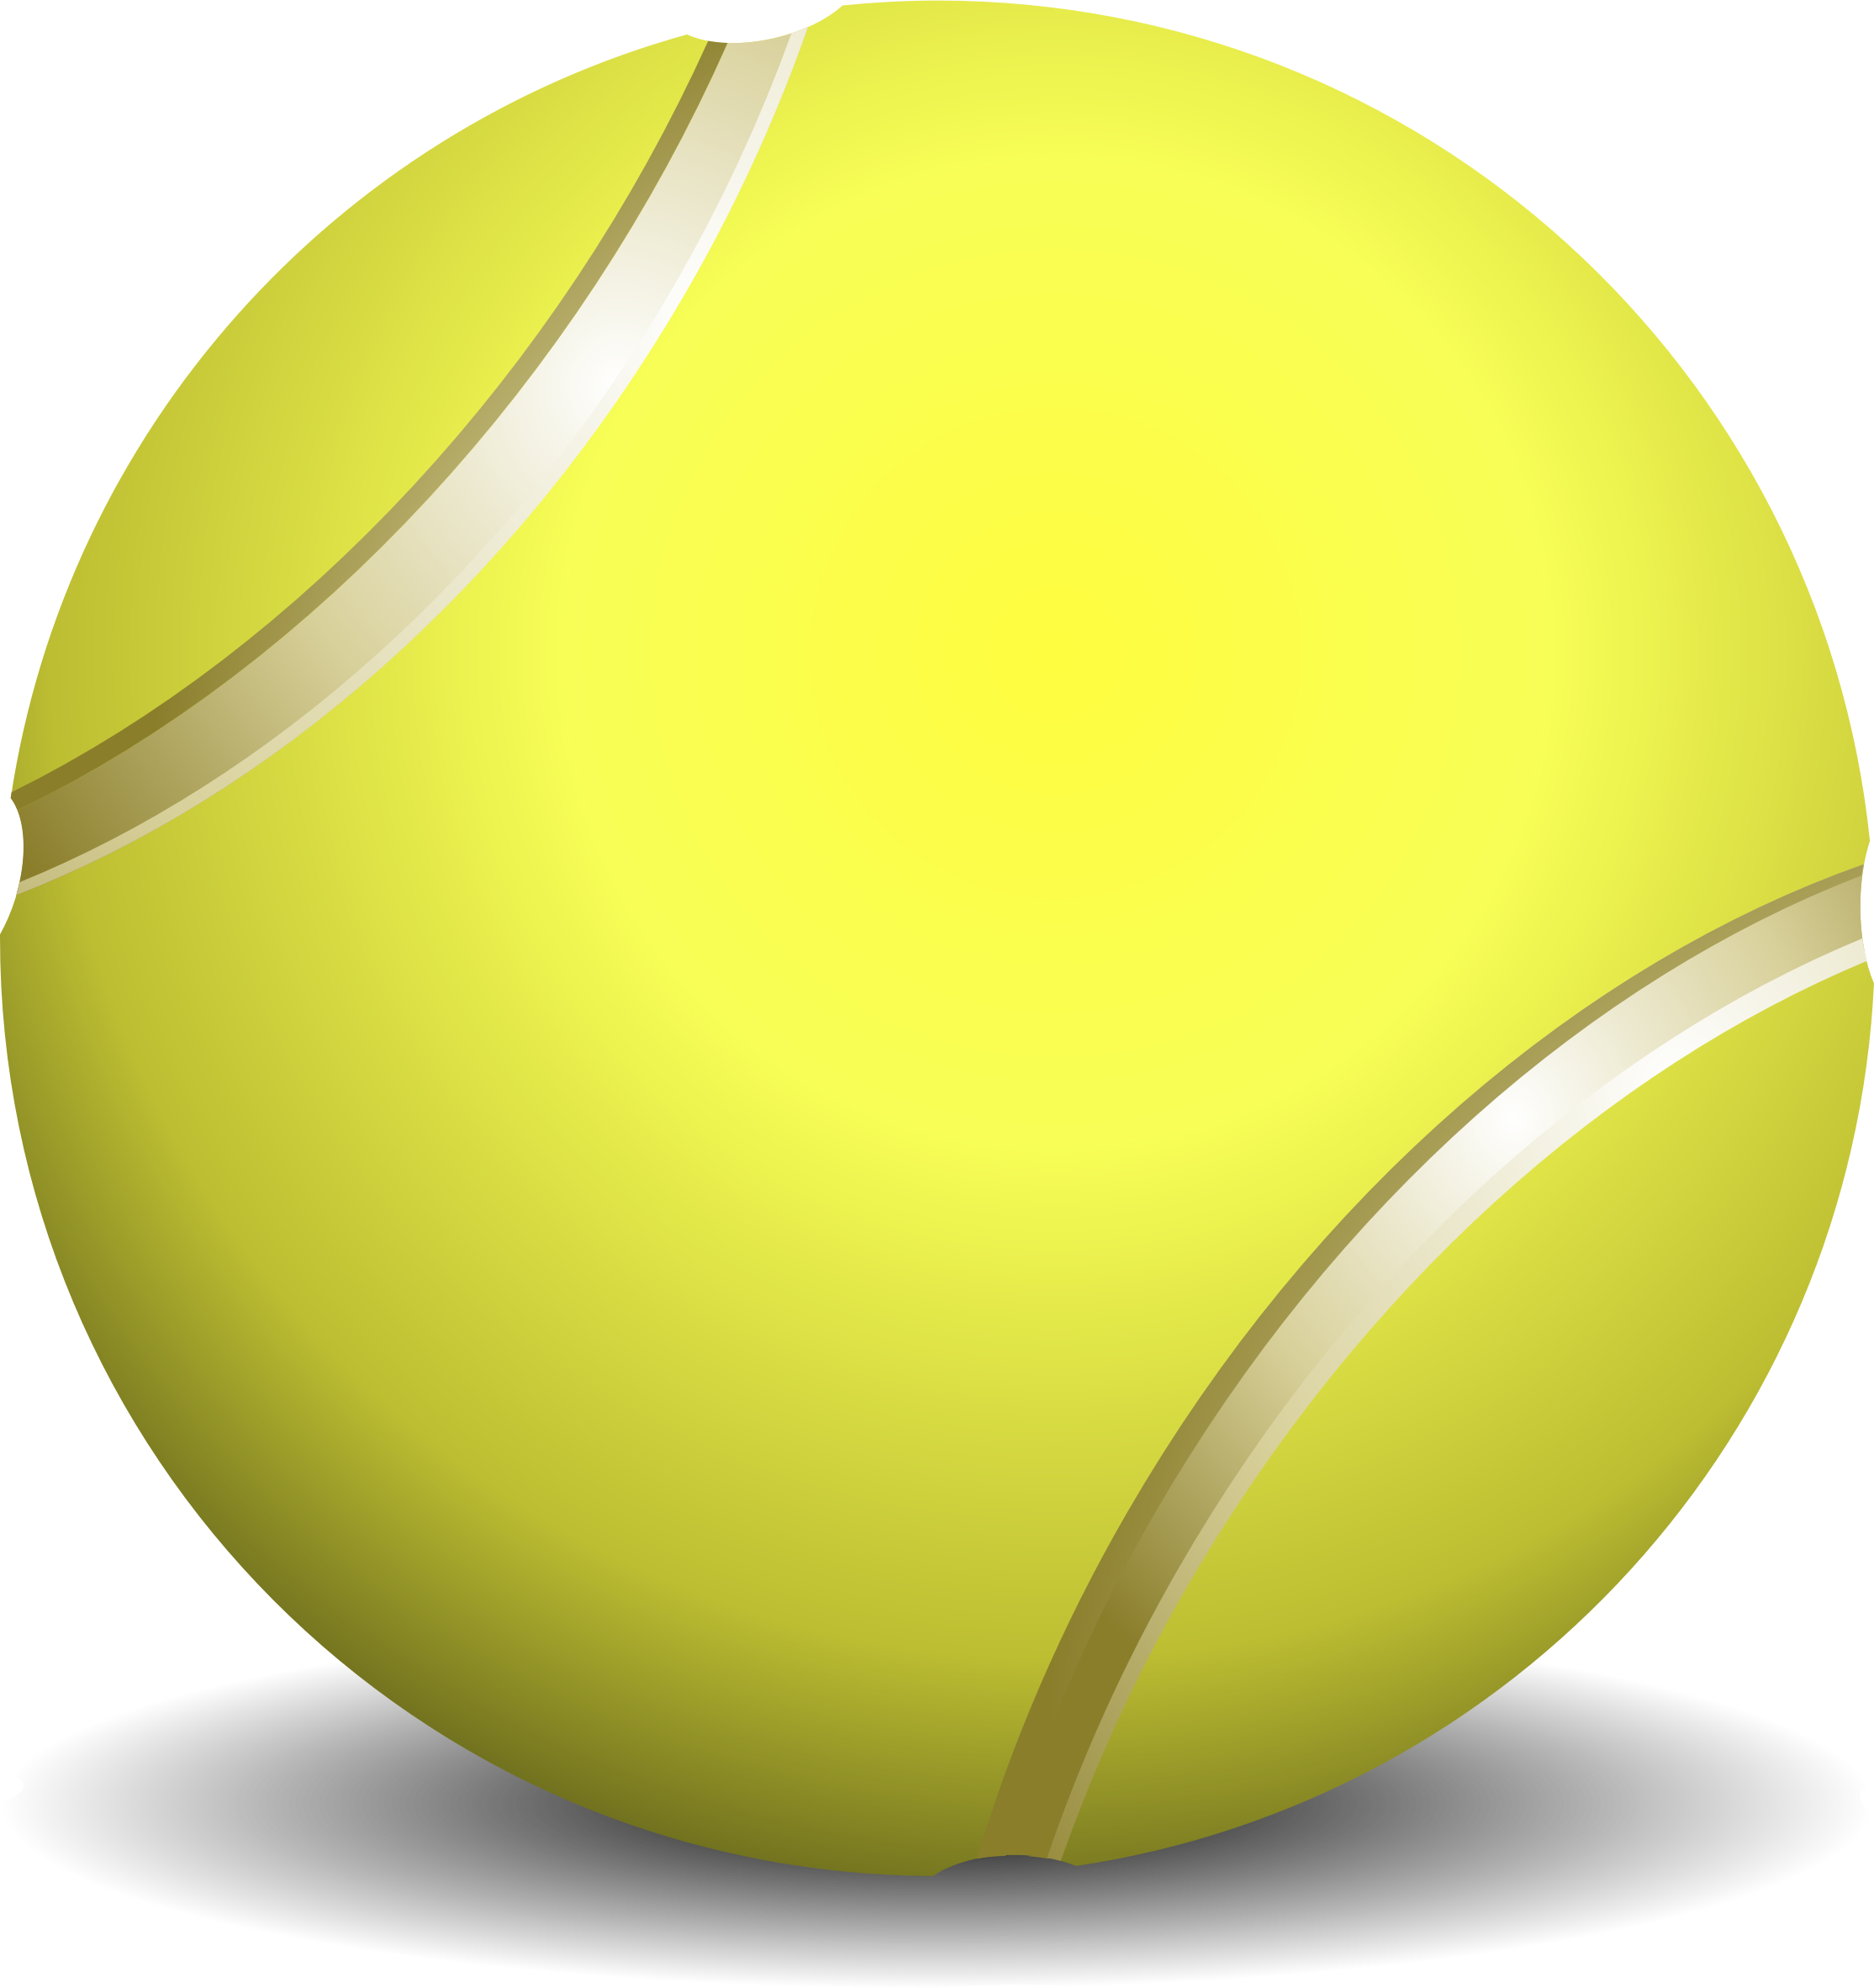 Tennis Ball clipart #6, Download drawings